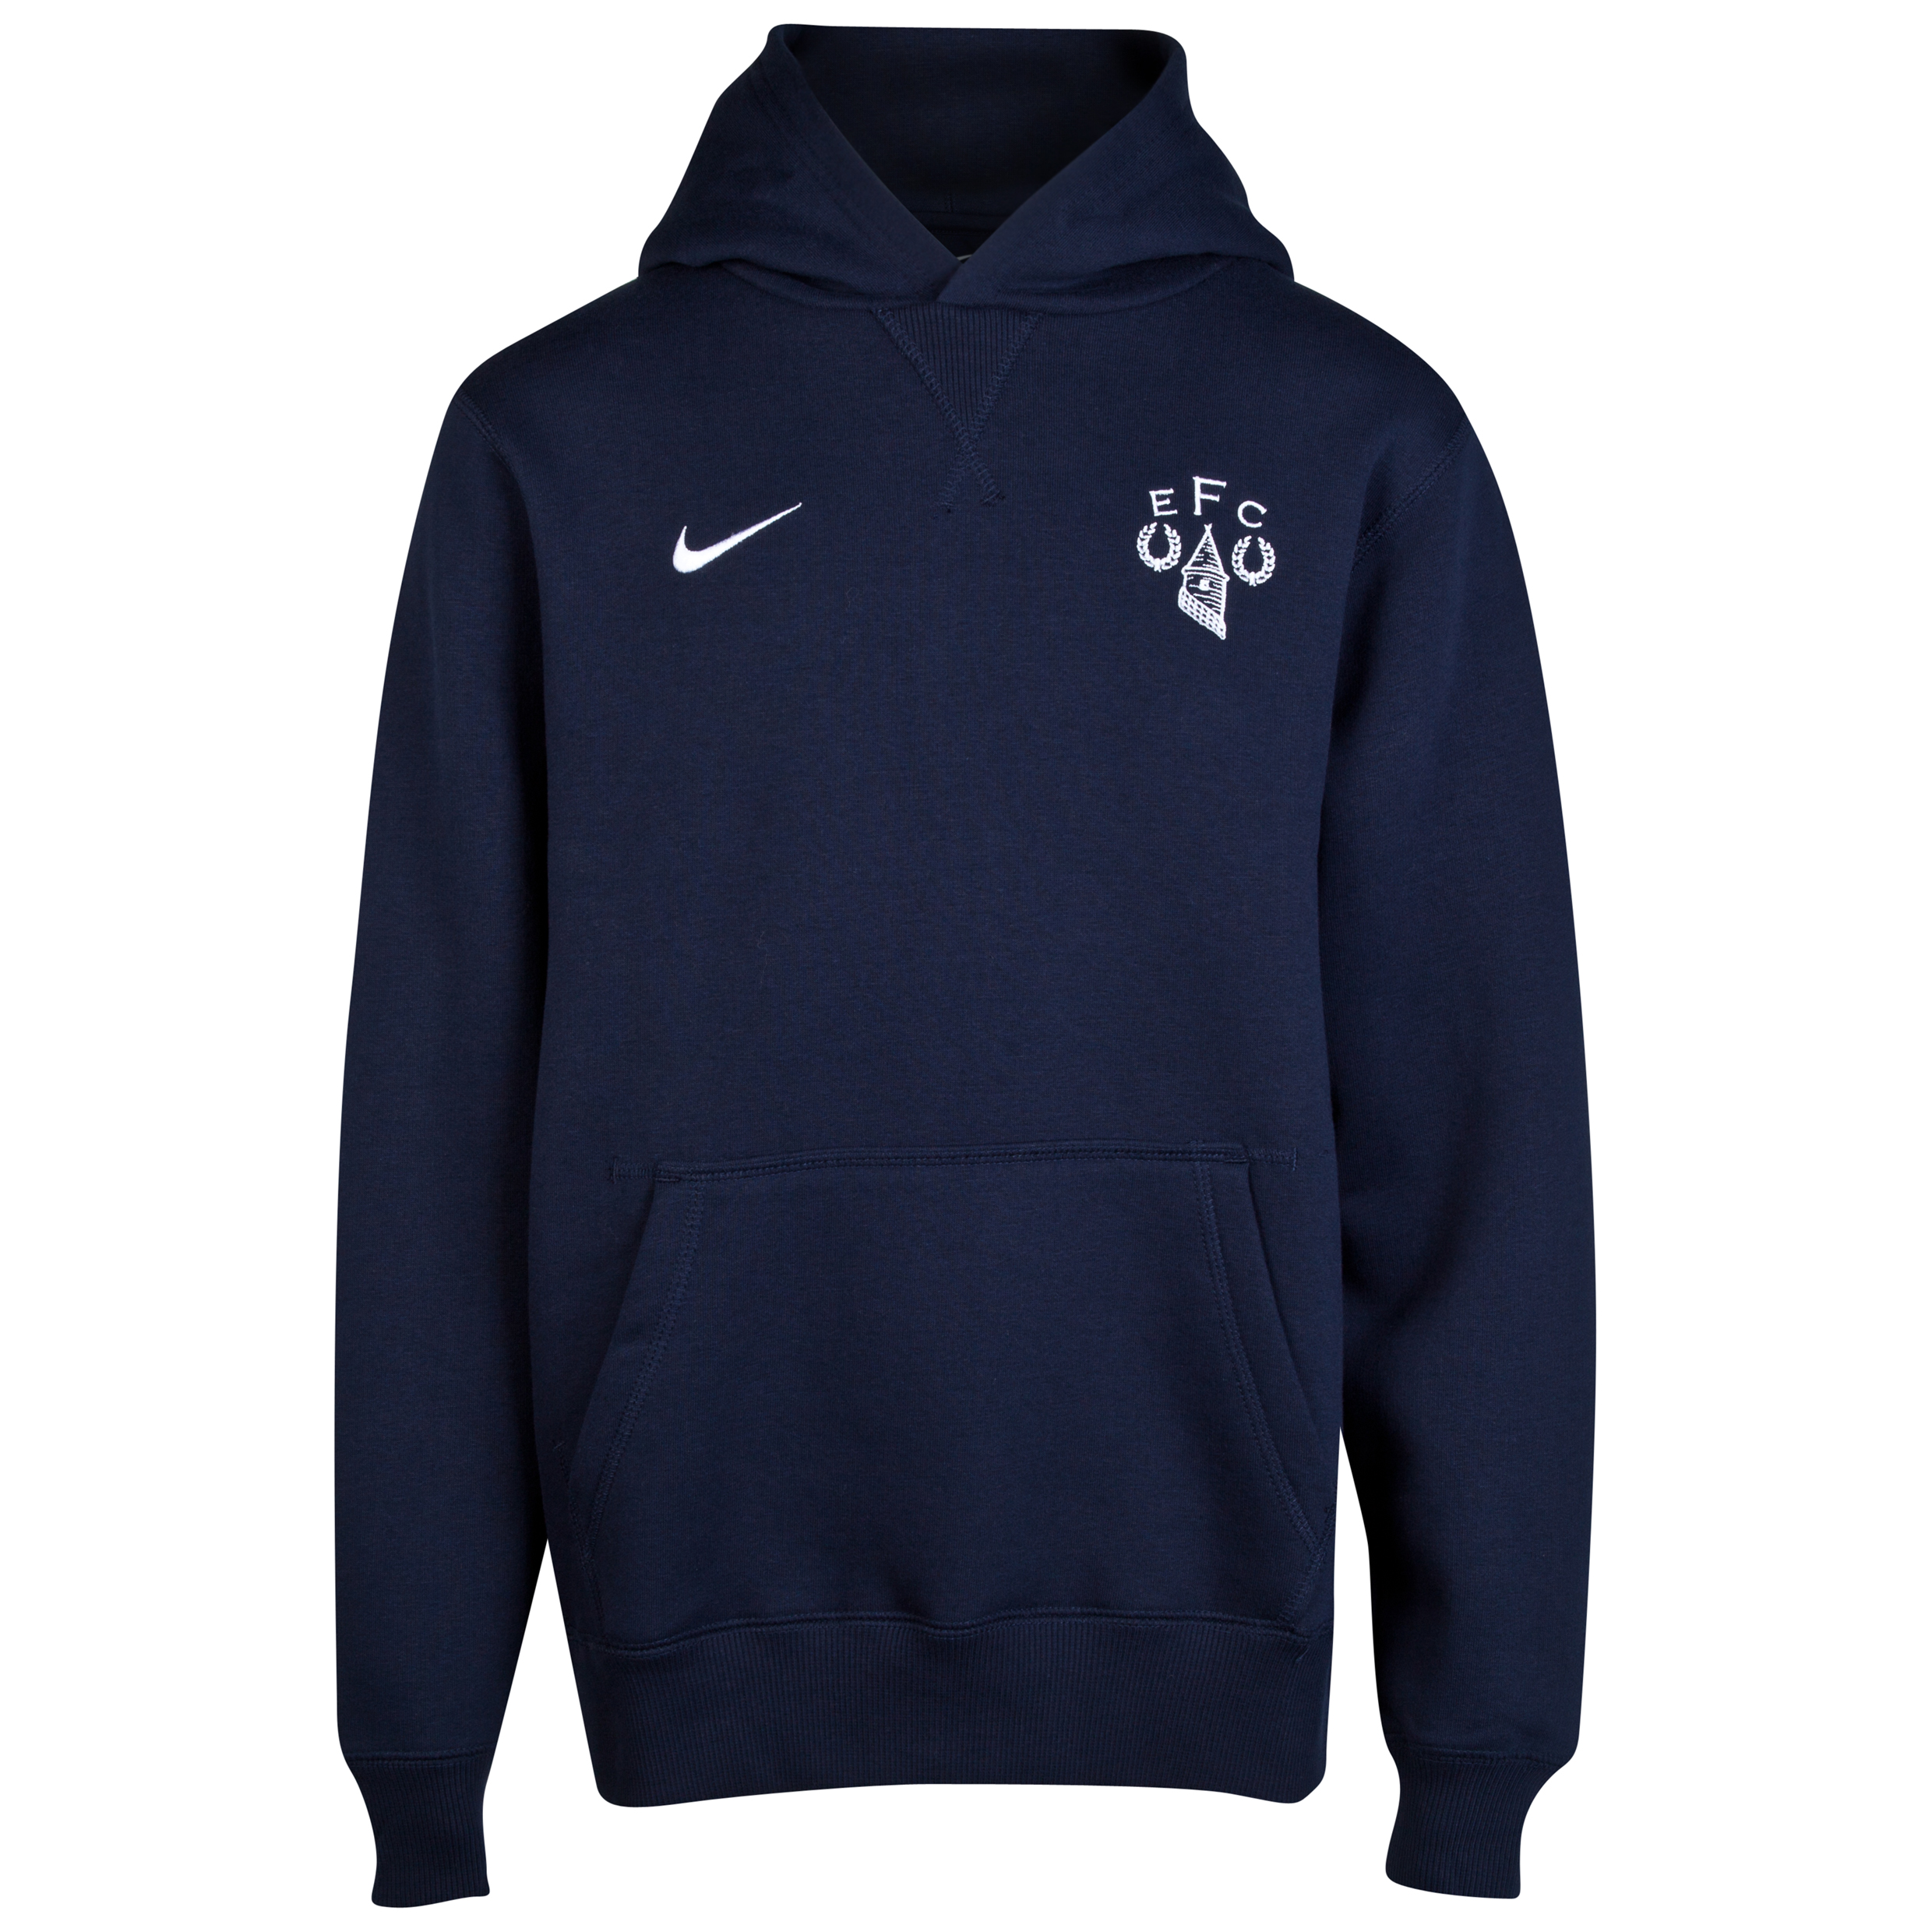 Everton Heritage Fleece Hoodie - Junior Navy